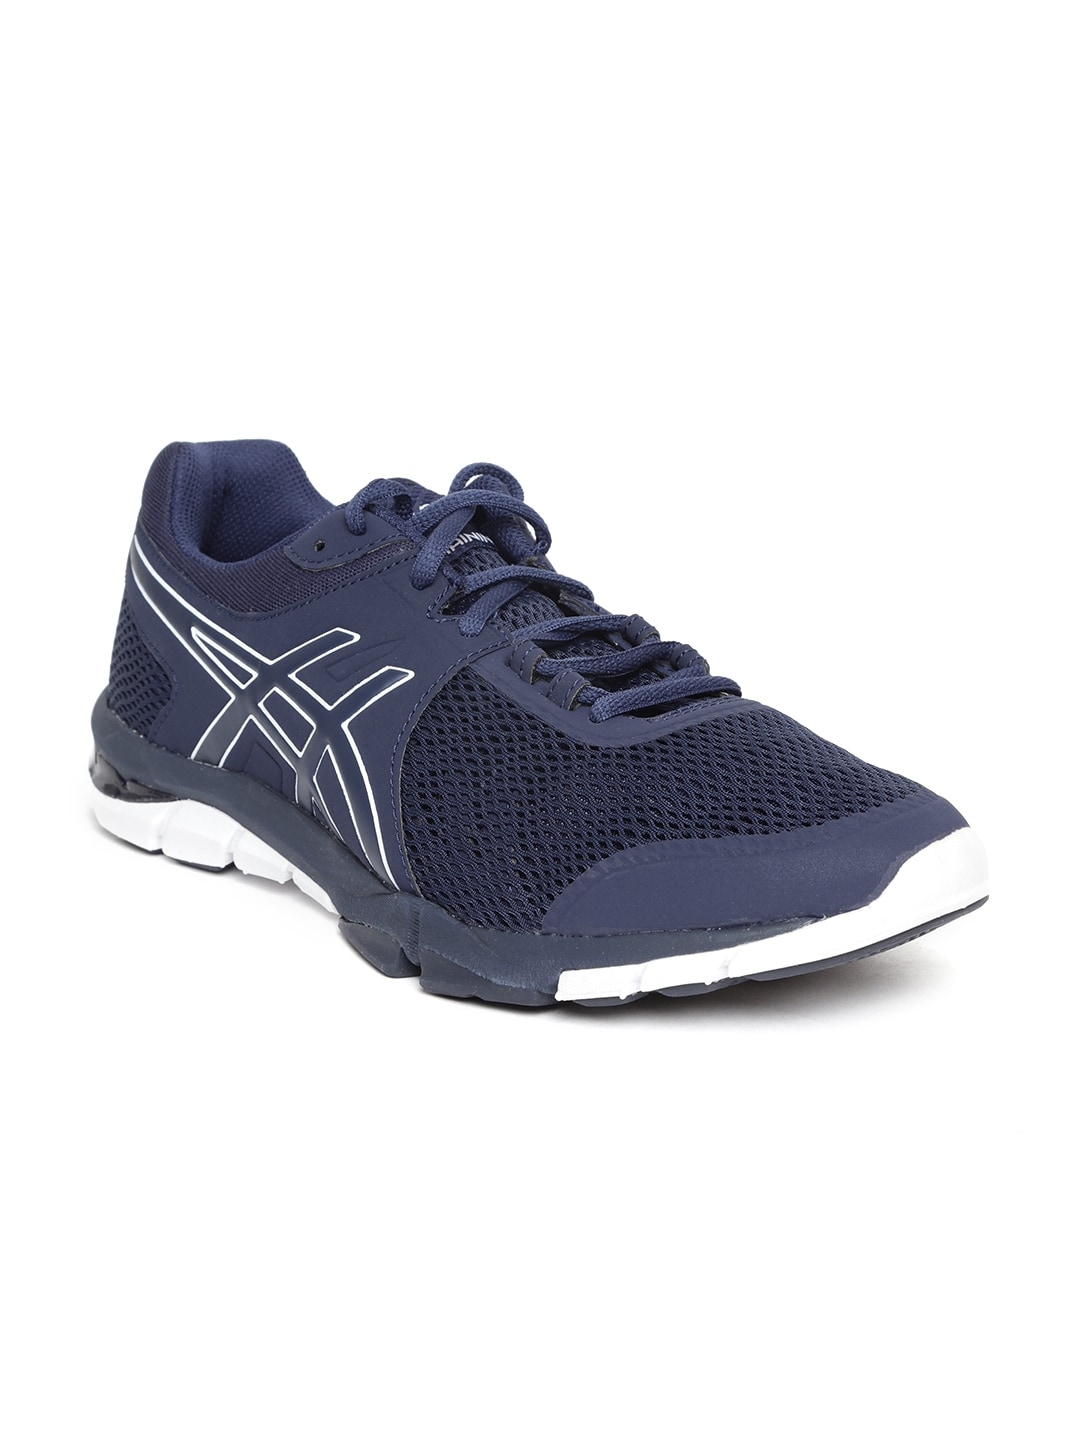 f598cf33b44a Asics Gel Domain Sports Shoes - Buy Asics Gel Domain Sports Shoes online in  India